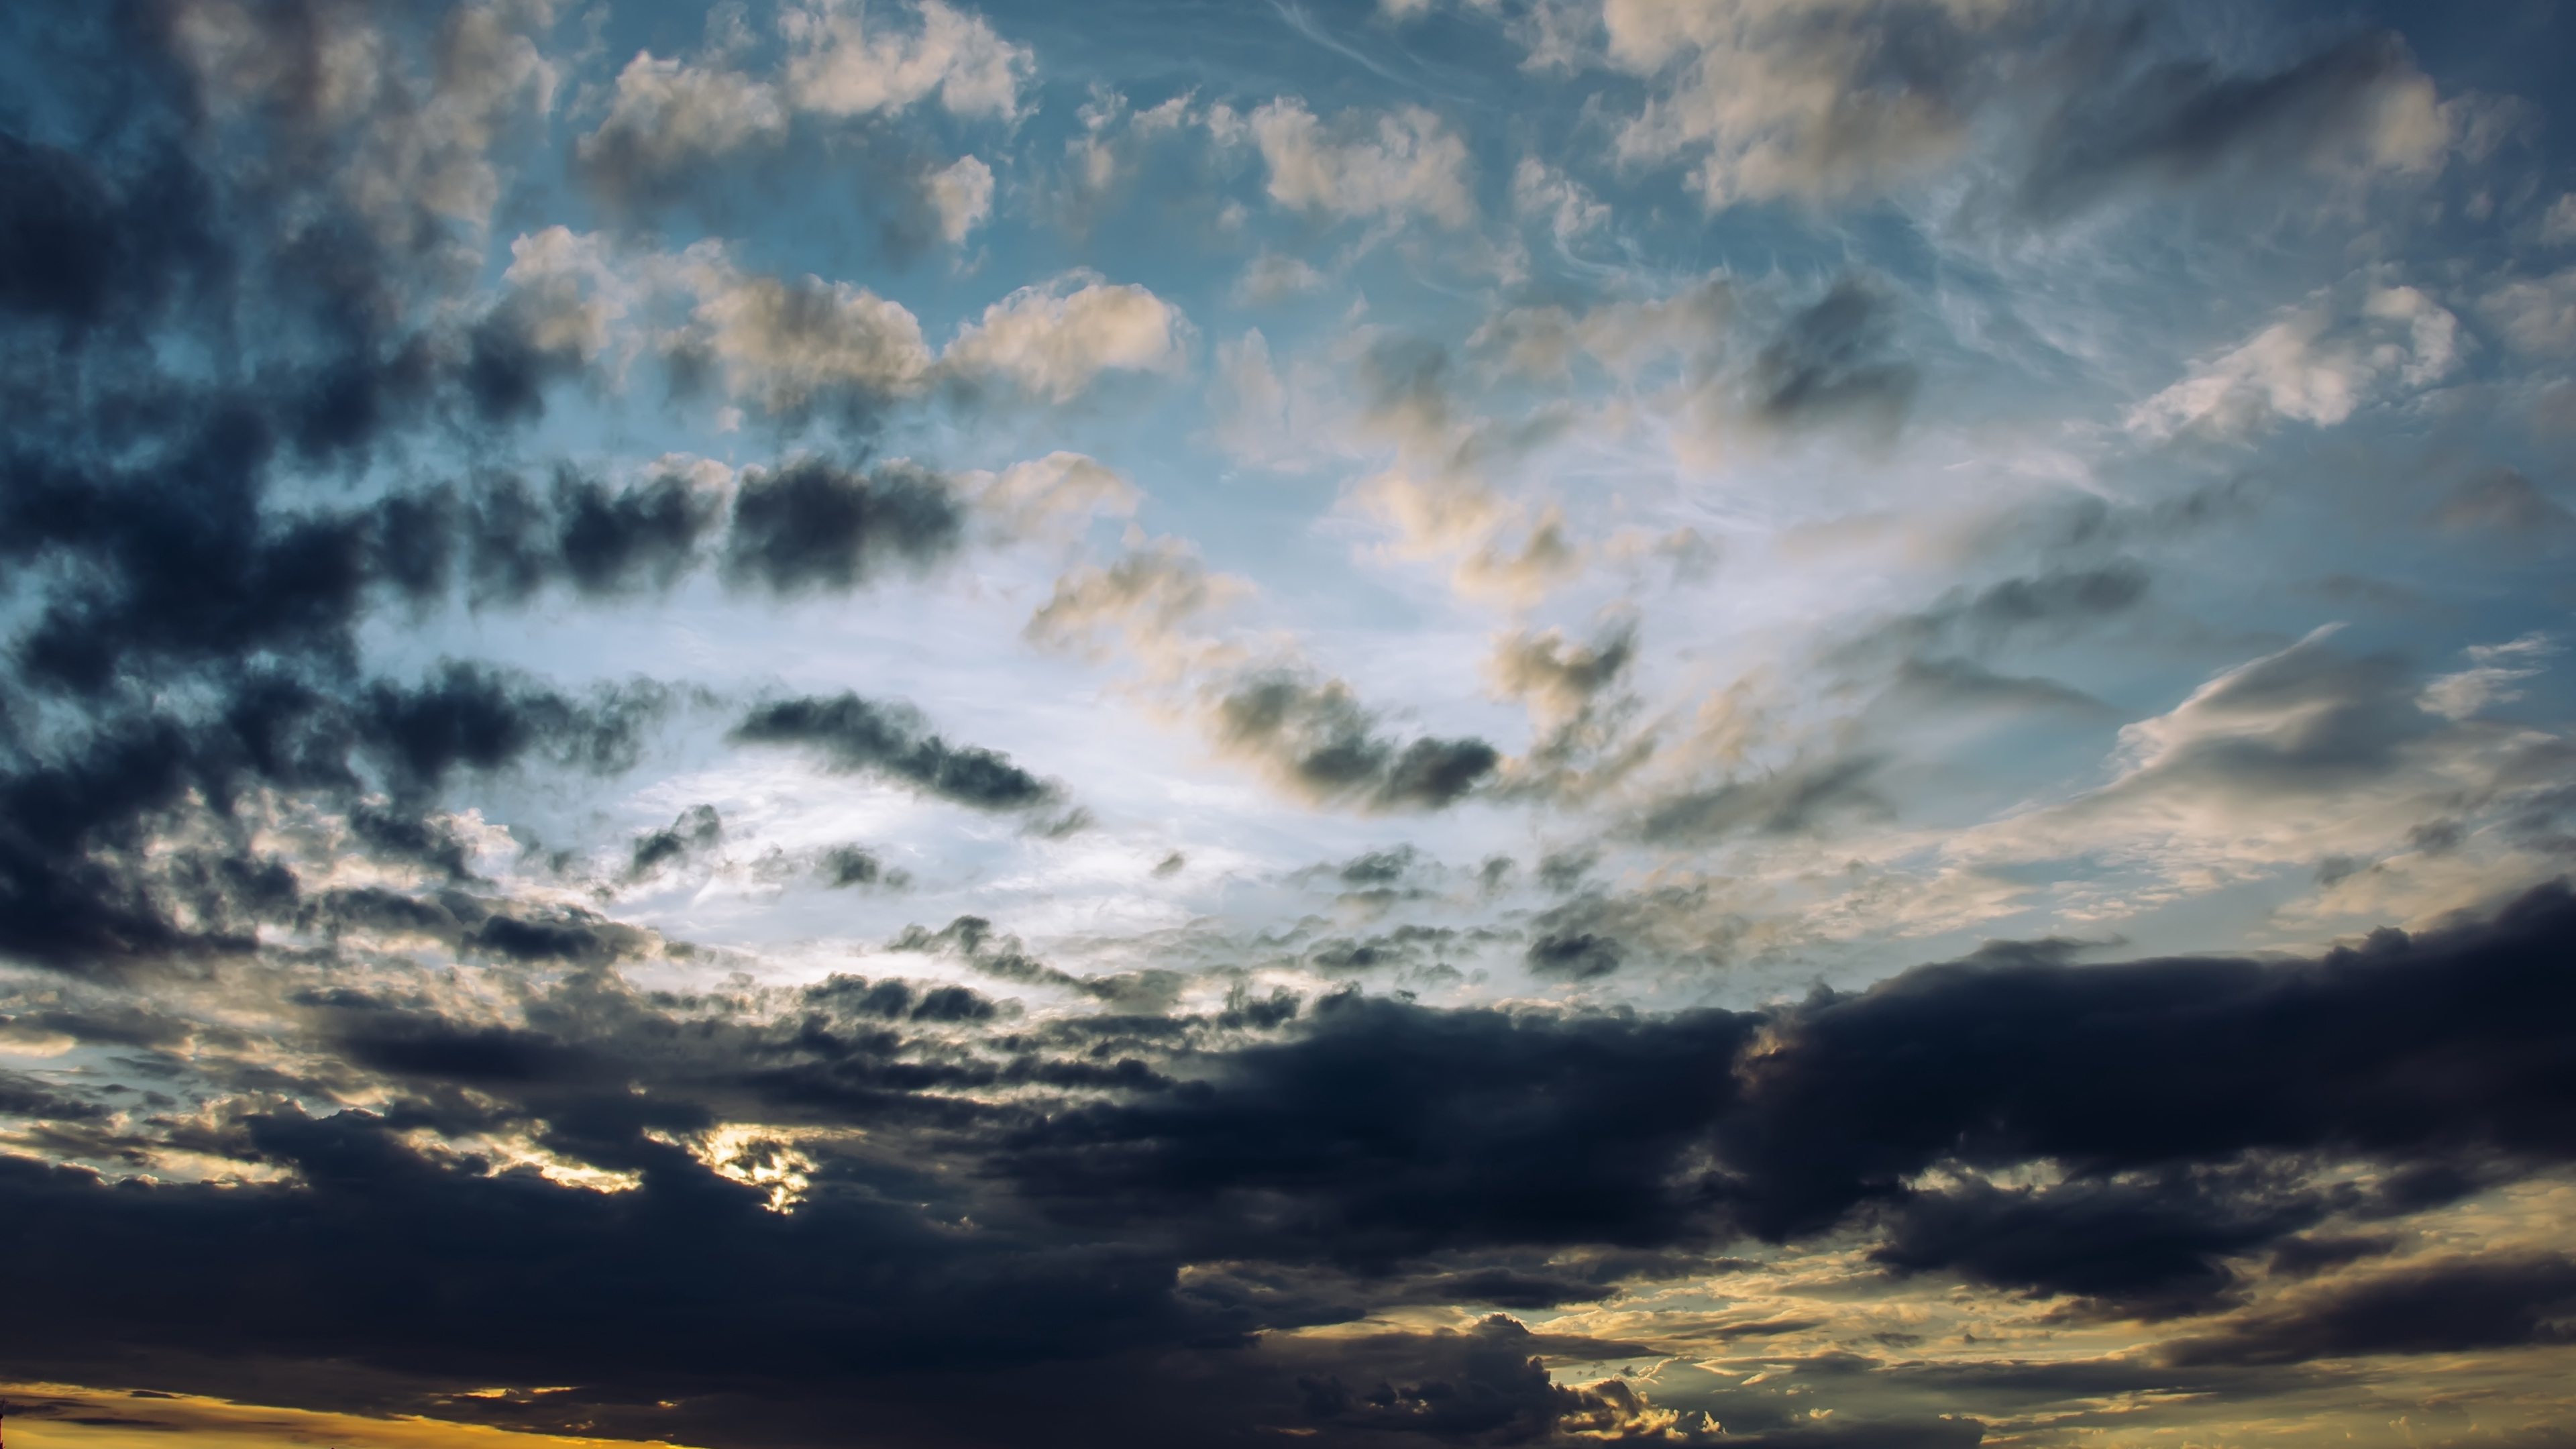 sky clouds overcast 4k 1541115955 - sky, clouds, overcast 4k - Sky, overcast, Clouds